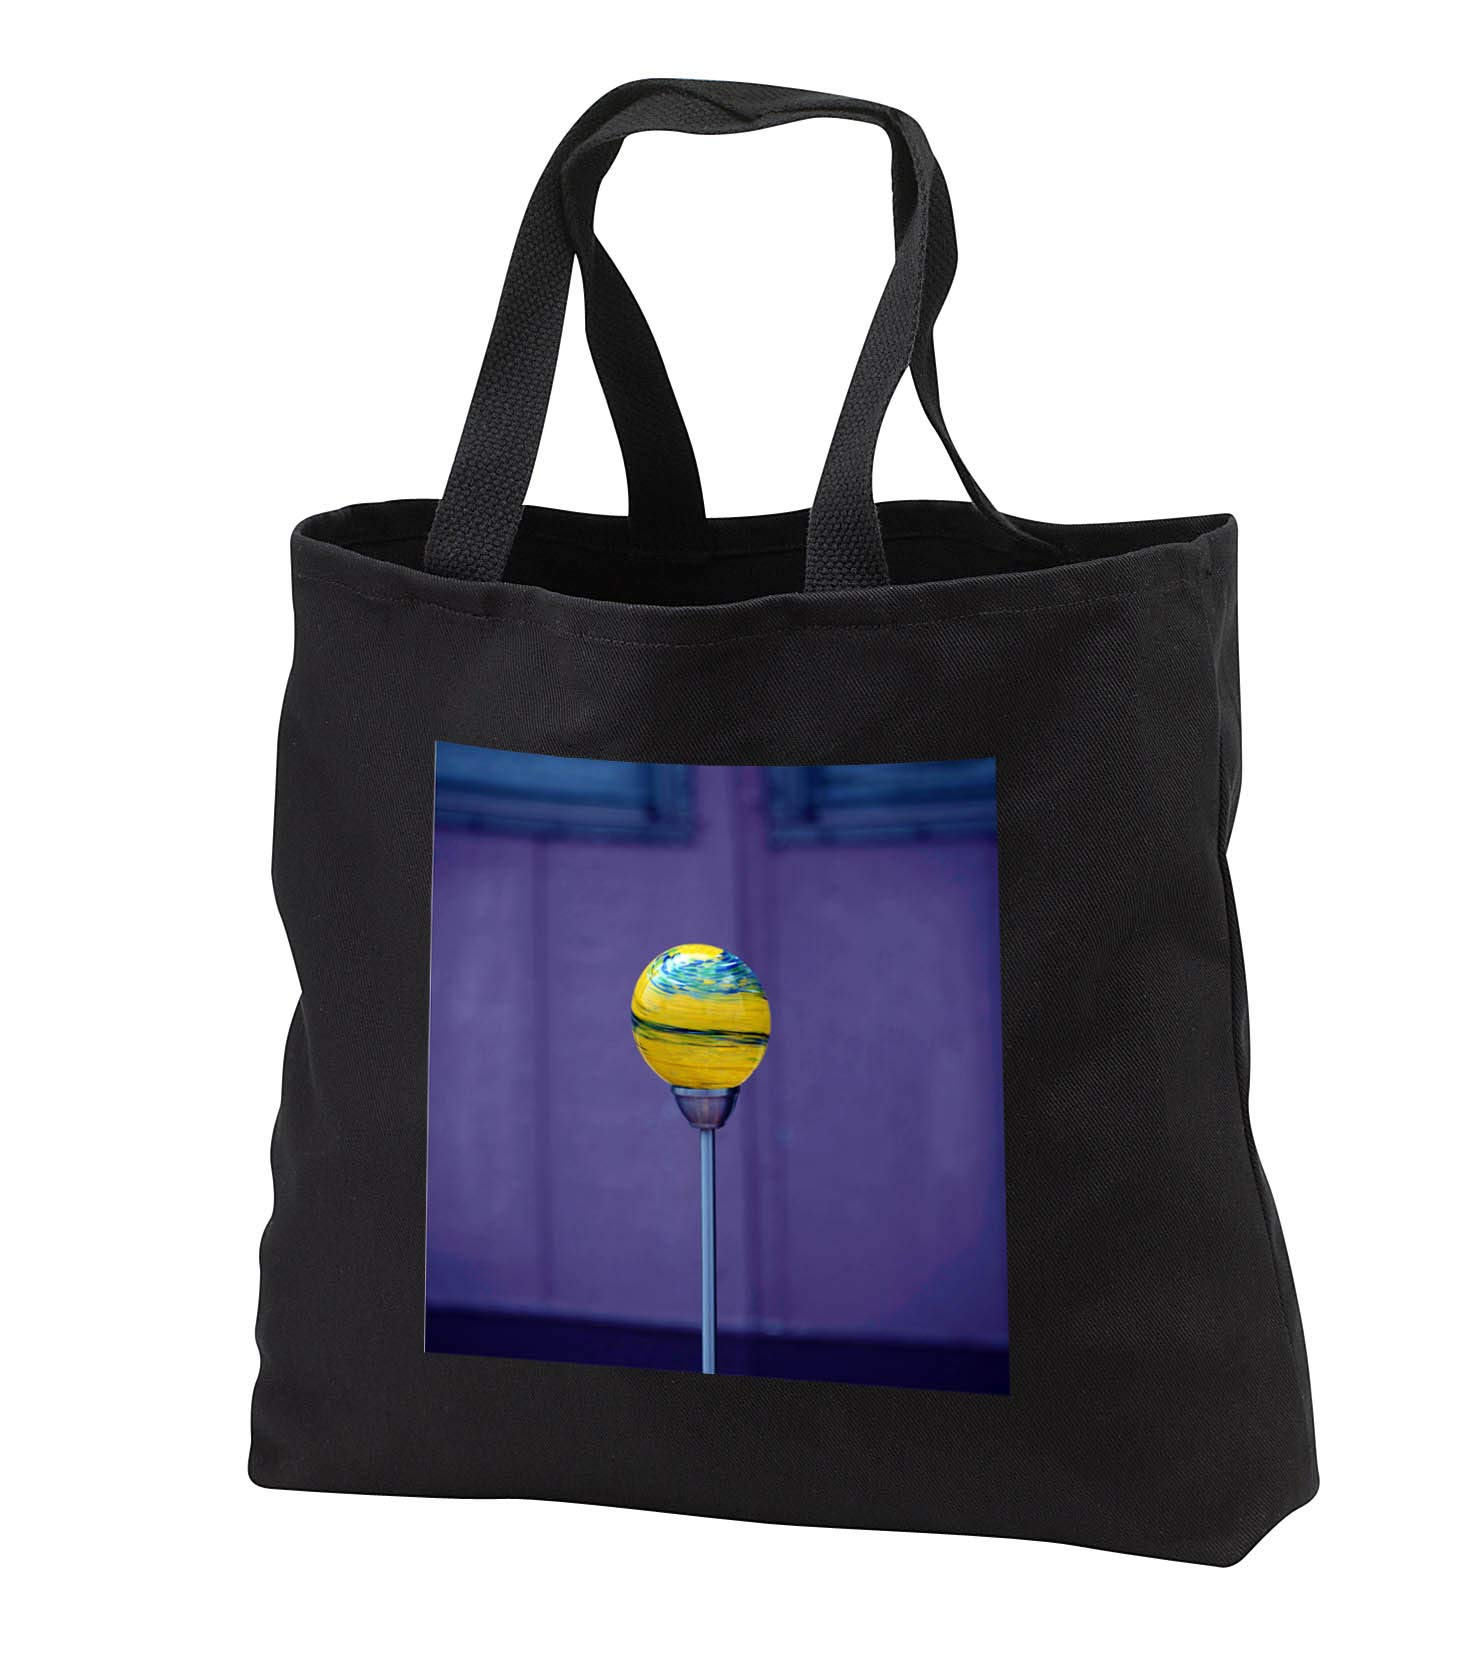 Jos Fauxtographee- Yard Ornament Glass - A Glass yard ornament on a purple backdrop - Tote Bags - Black Tote Bag 14w x 14h x 3d (tb_292383_1)